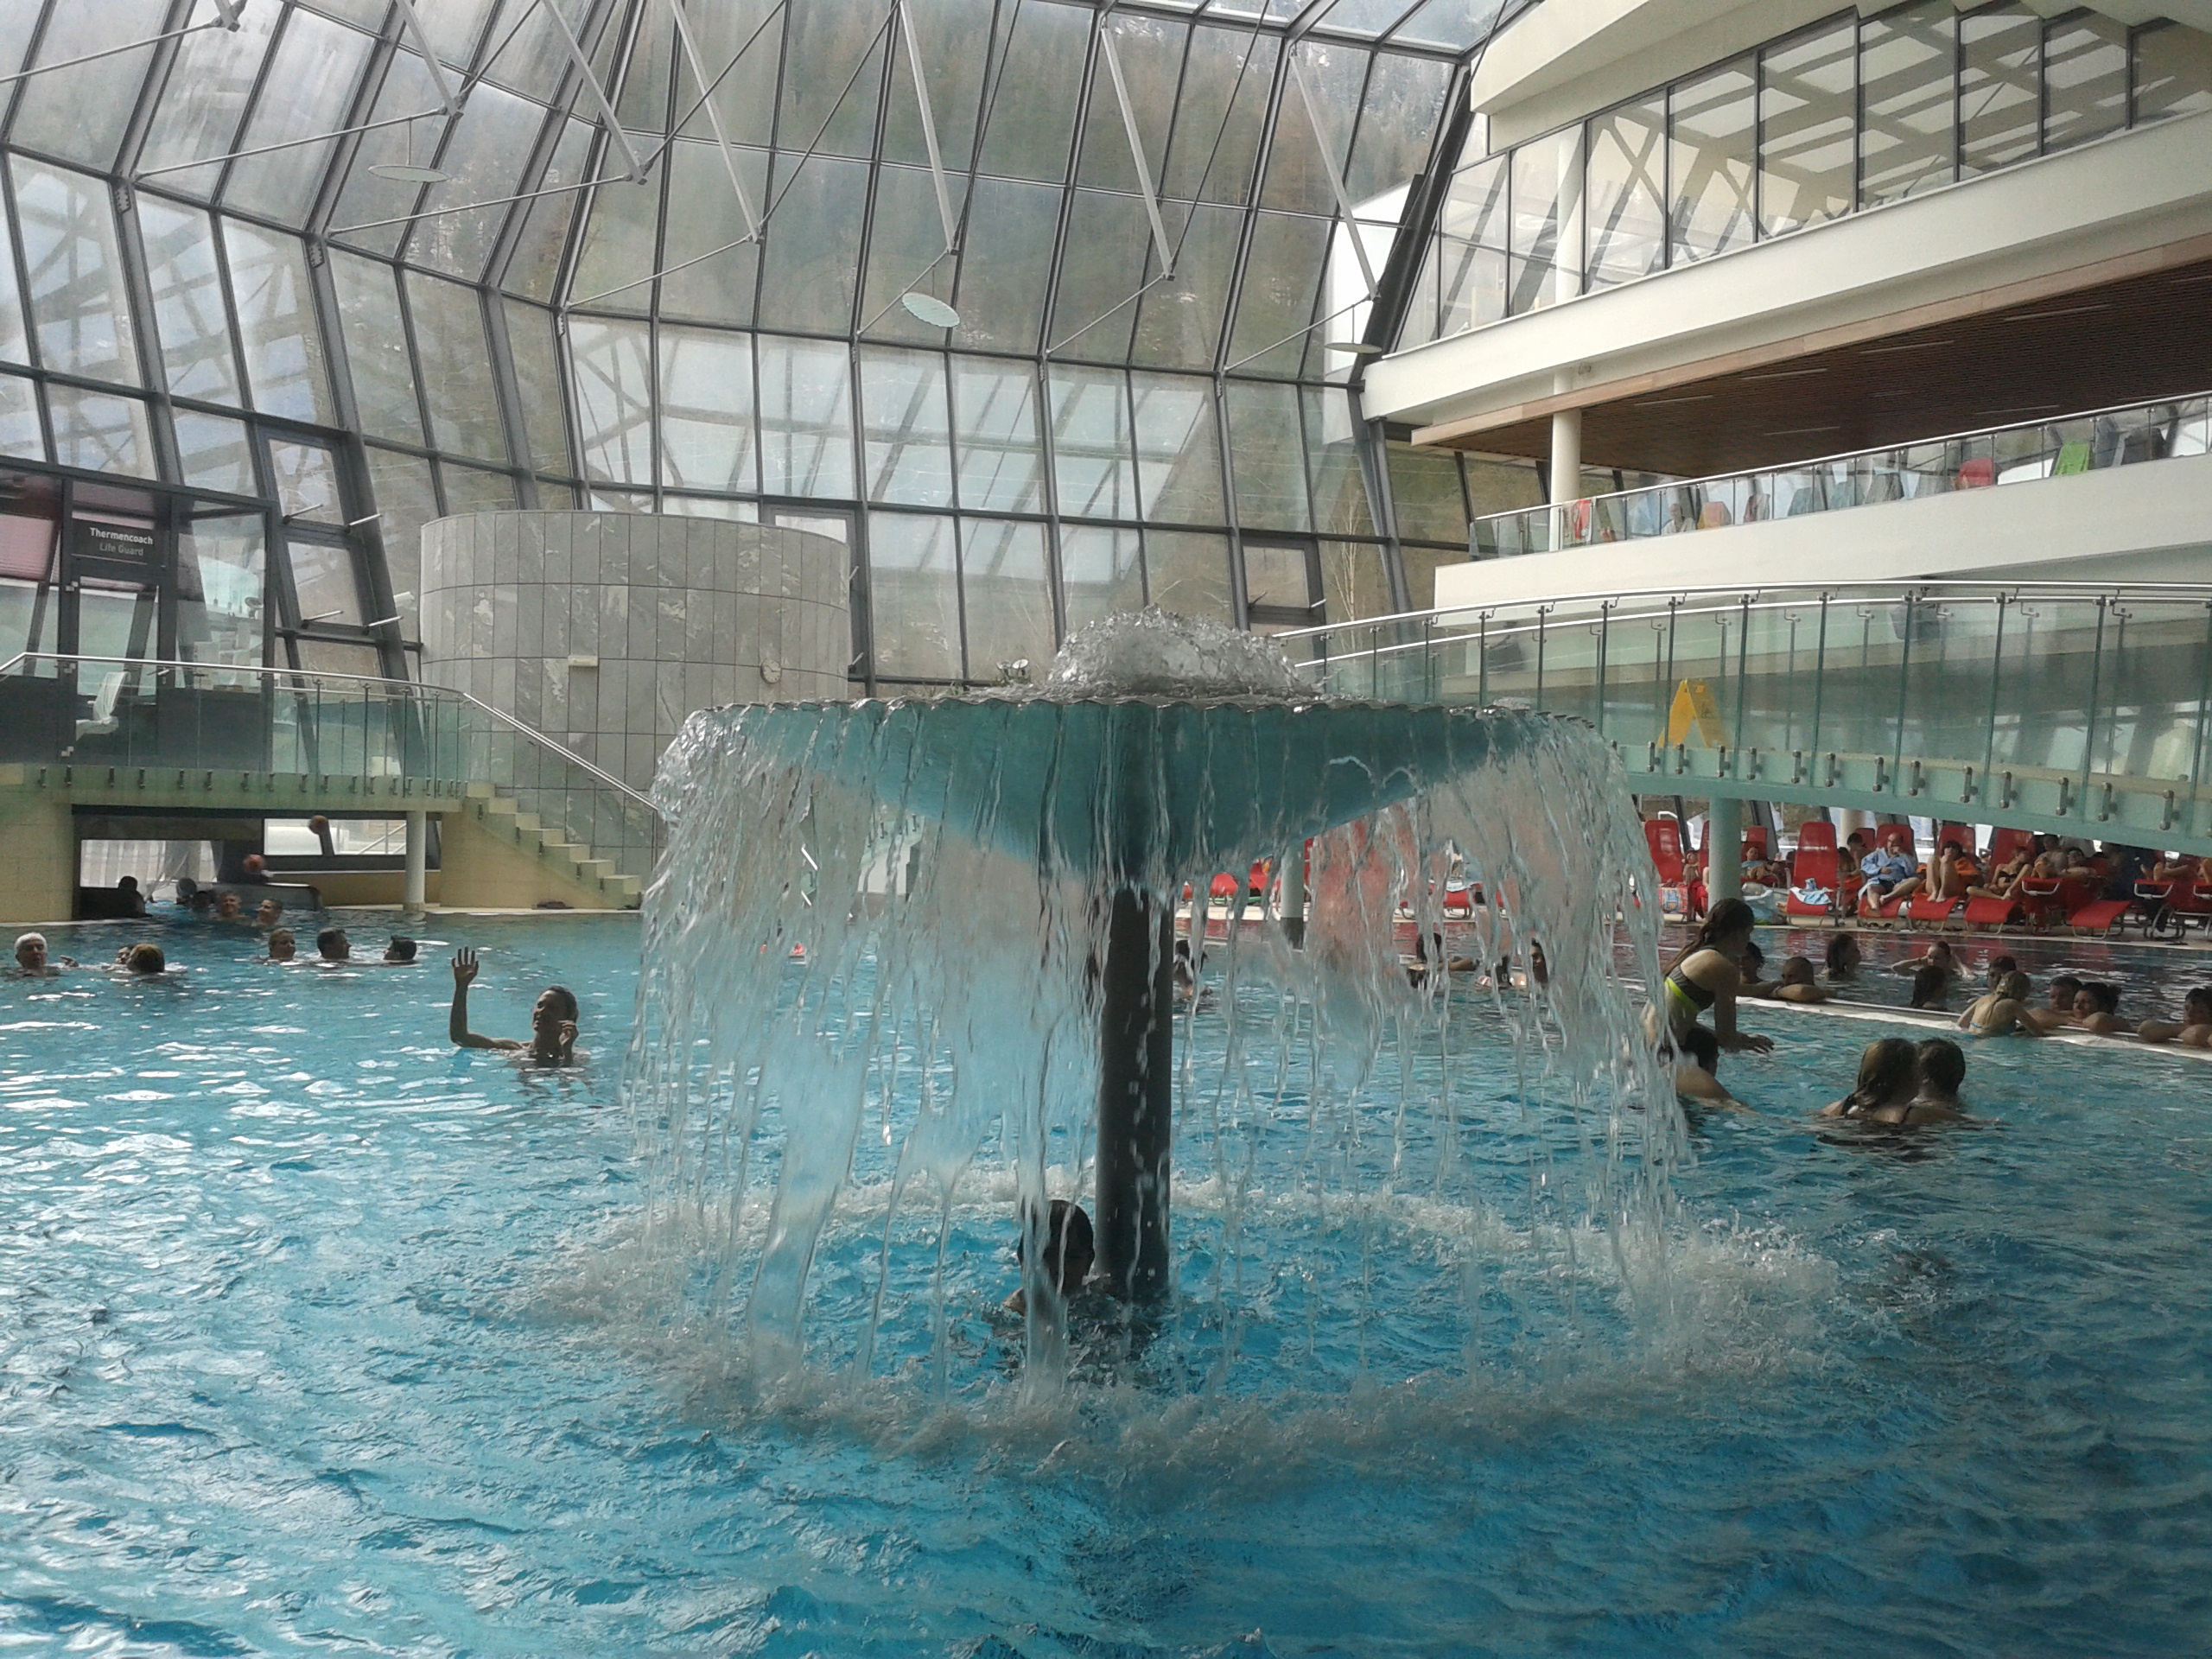 AQUA DOME, Sölden